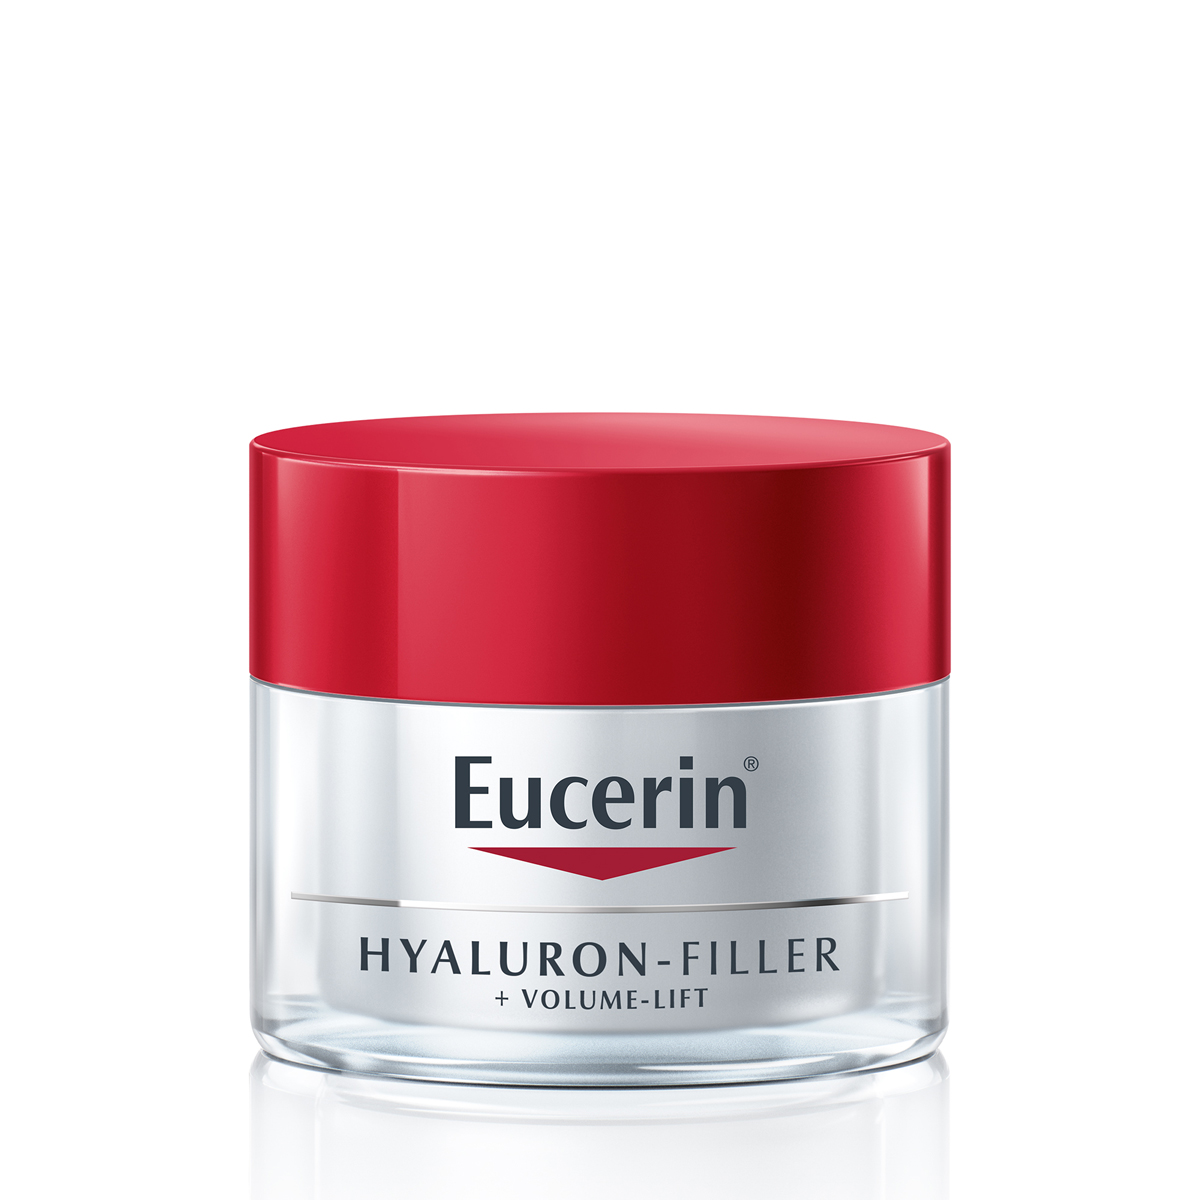 Eucerin Hyaluron-Filler + Volume-Lift Dagcrème  Spf15 (50ml)